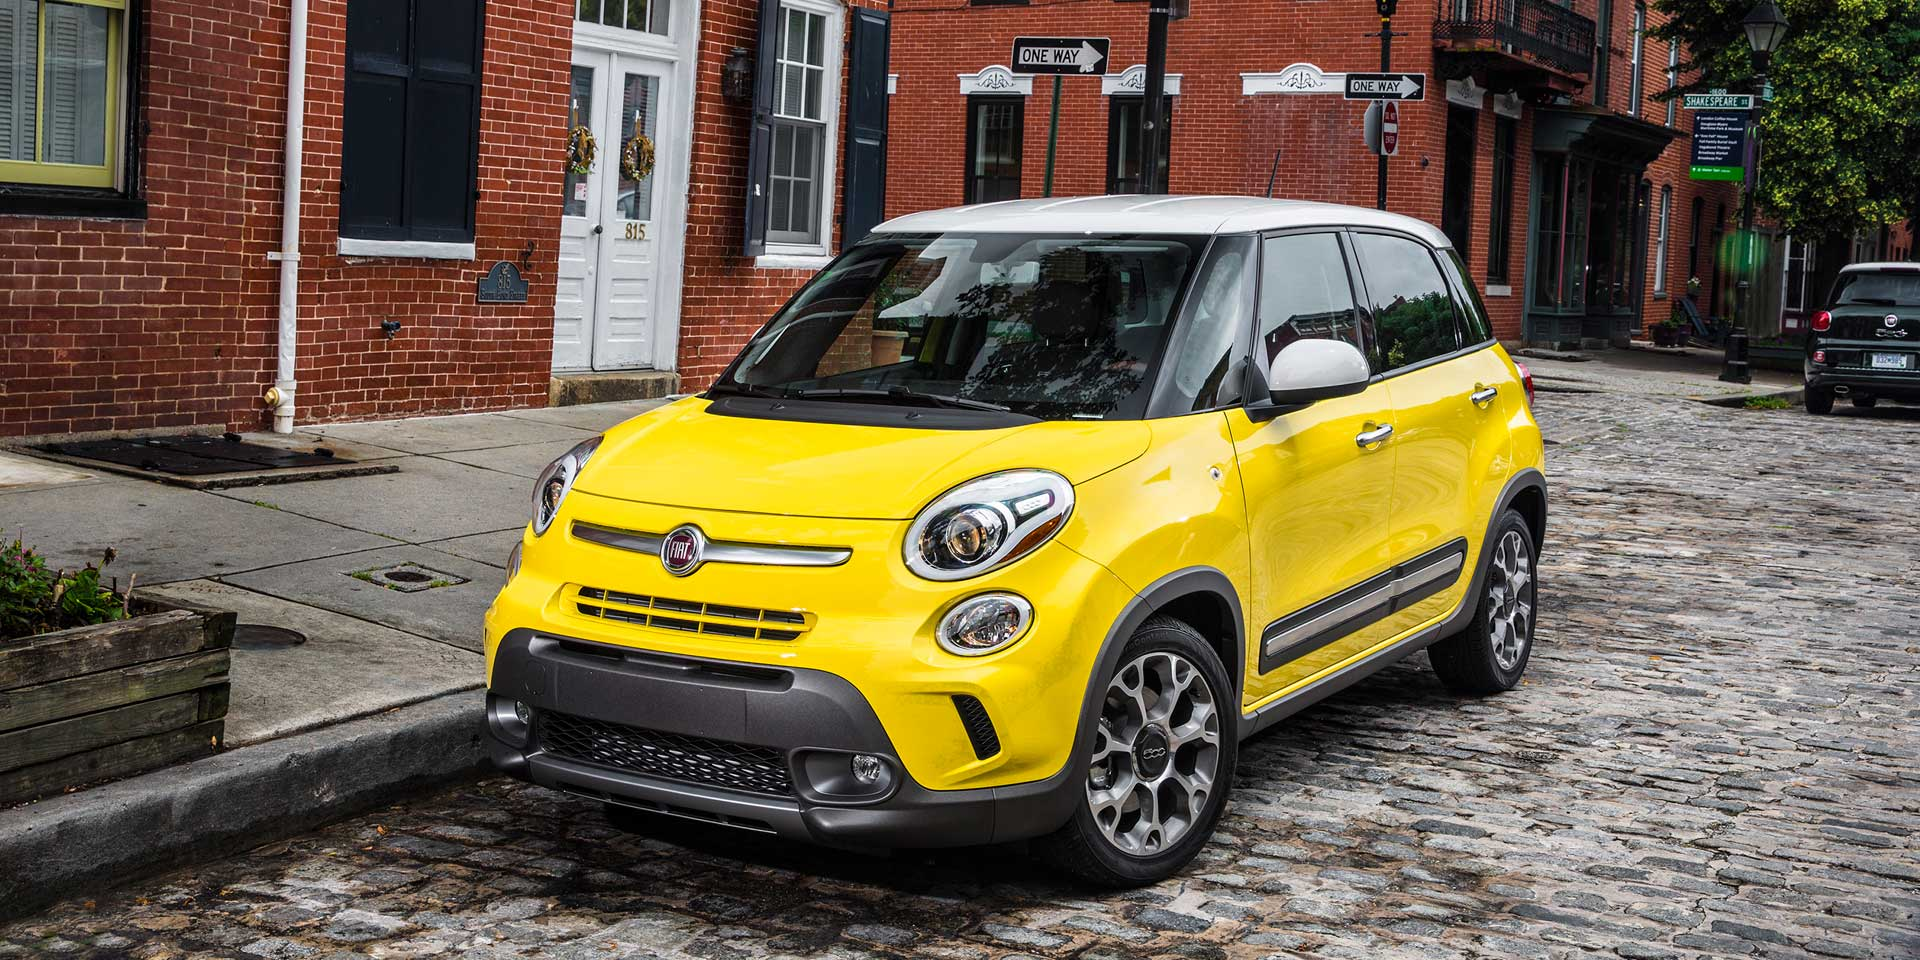 2017 Fiat 500l The Is An Extended Wheelbase Version Of 500 Subcompact Car This Four Door Five Seat Small Wagon Competes With Vehicles Like